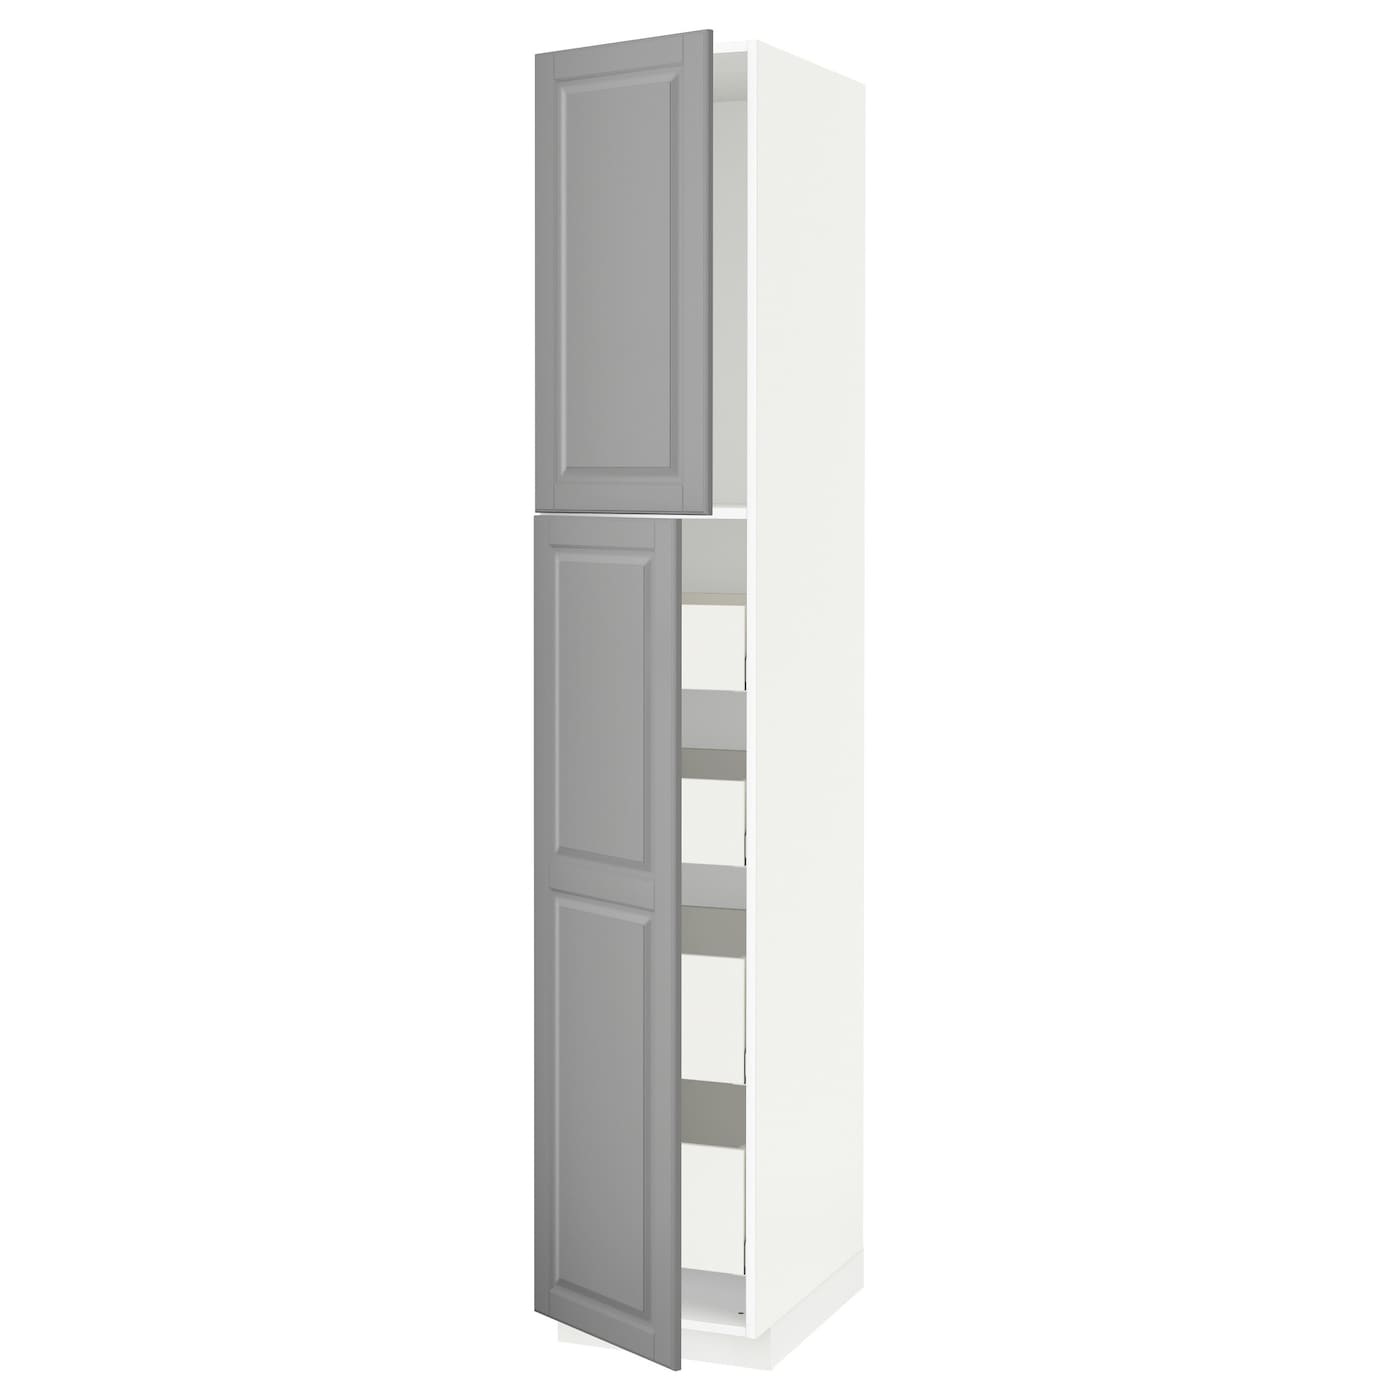 metod maximera armoire 2 portes 4 tiroirs blanc bodbyn gris 40x60x220 cm ikea. Black Bedroom Furniture Sets. Home Design Ideas